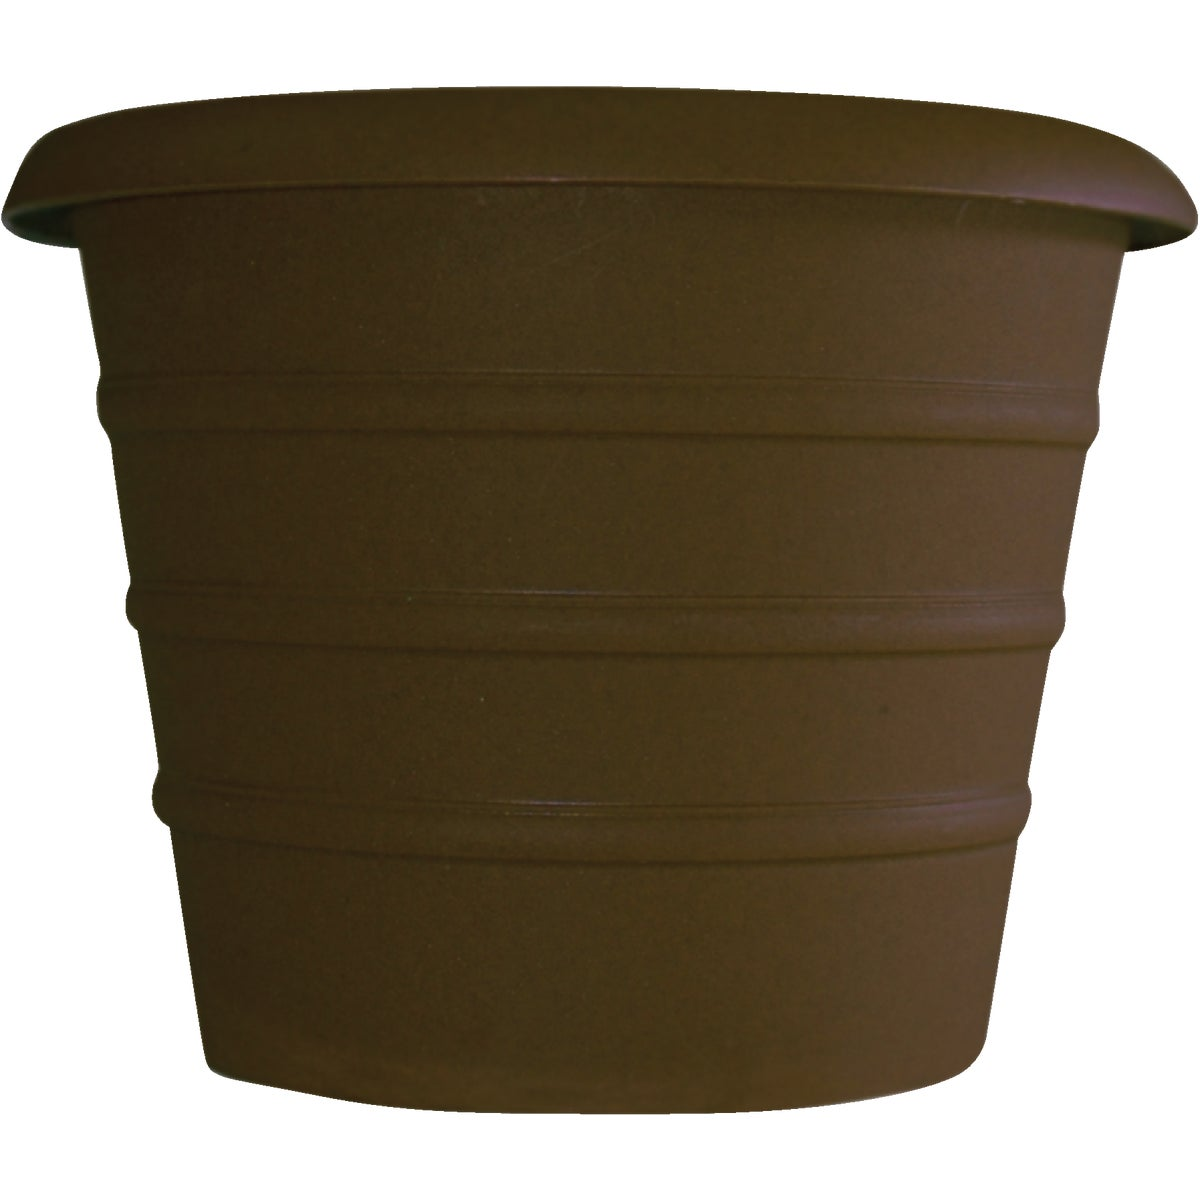 "8"" CHOC SELF WATER POT - MSA08001E21 by Myers Industries Inc"